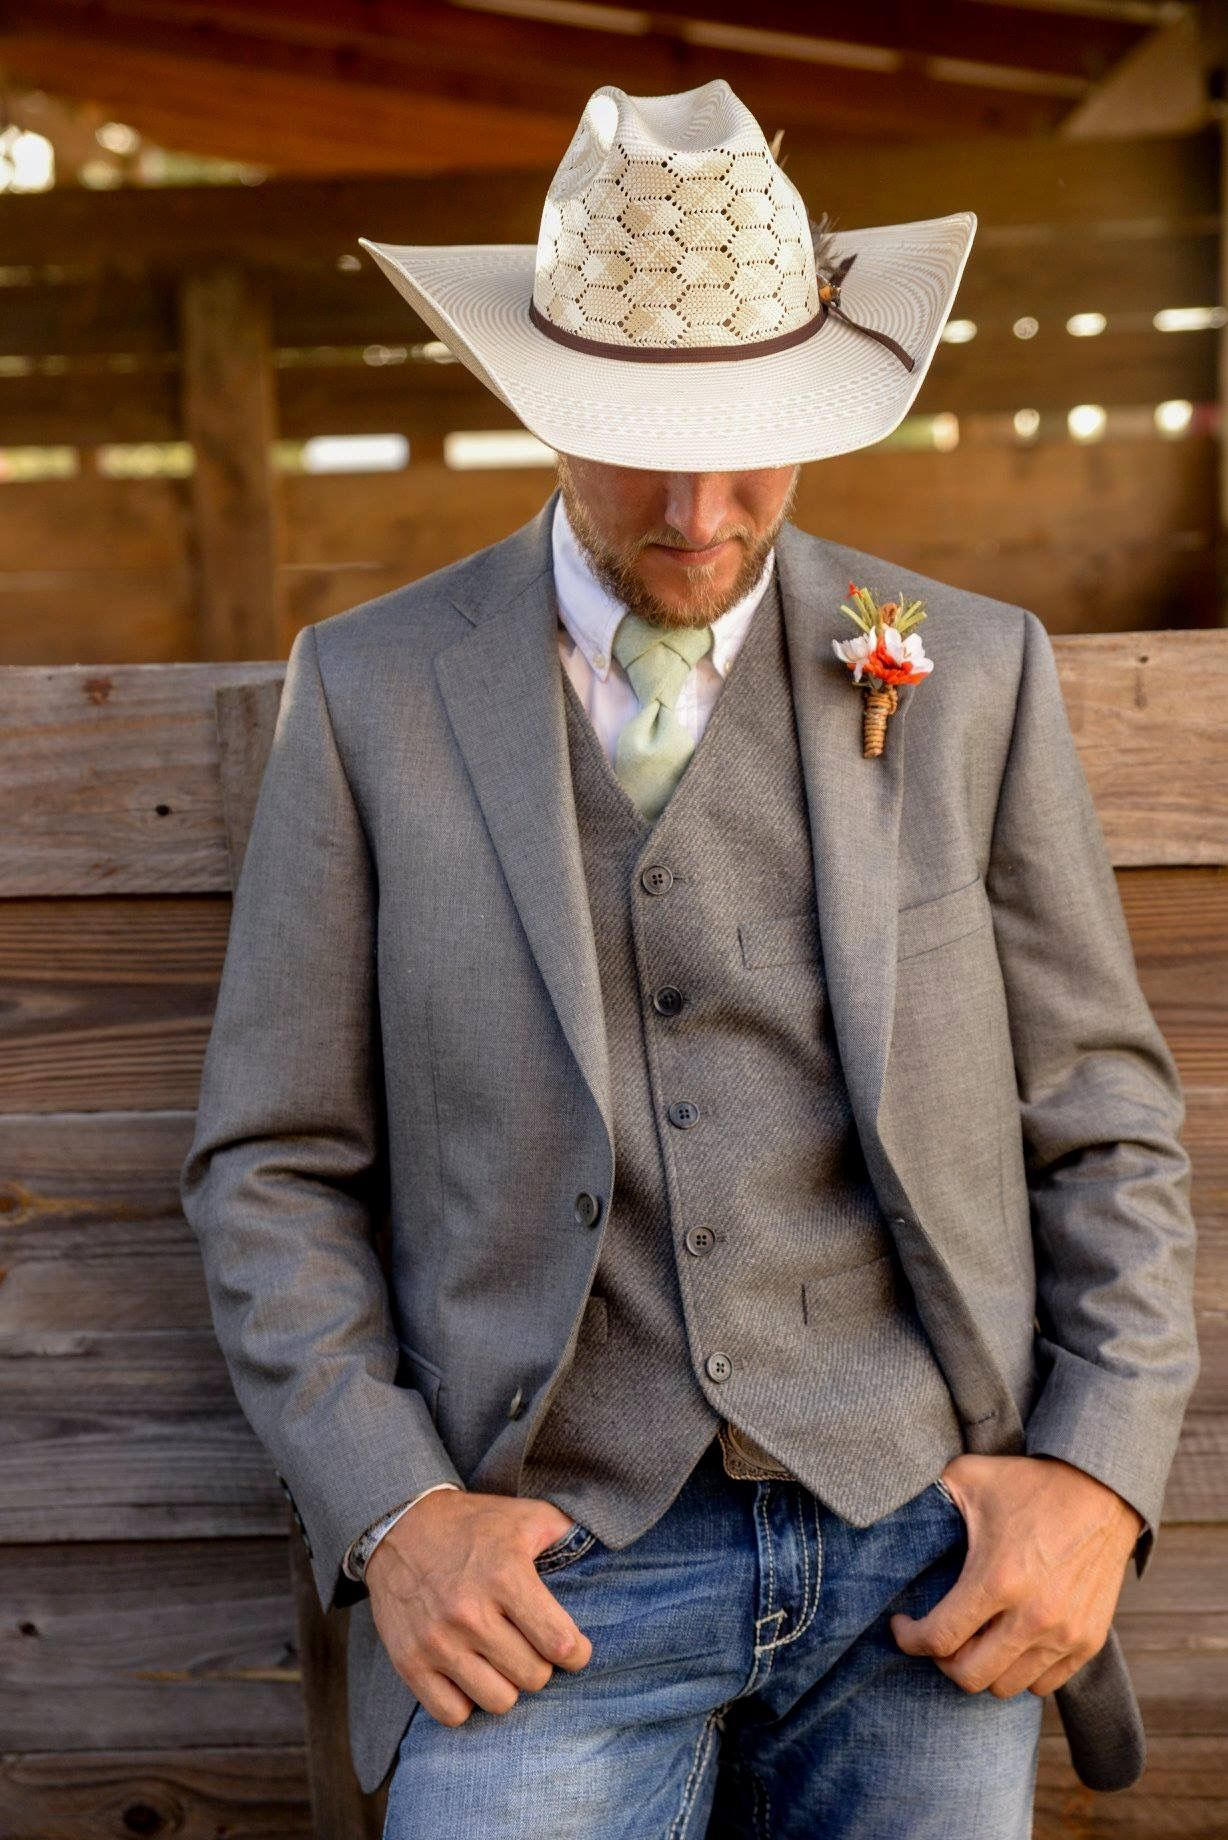 950640aa7cb Groom attire for country western wedding. Grey suit jacket